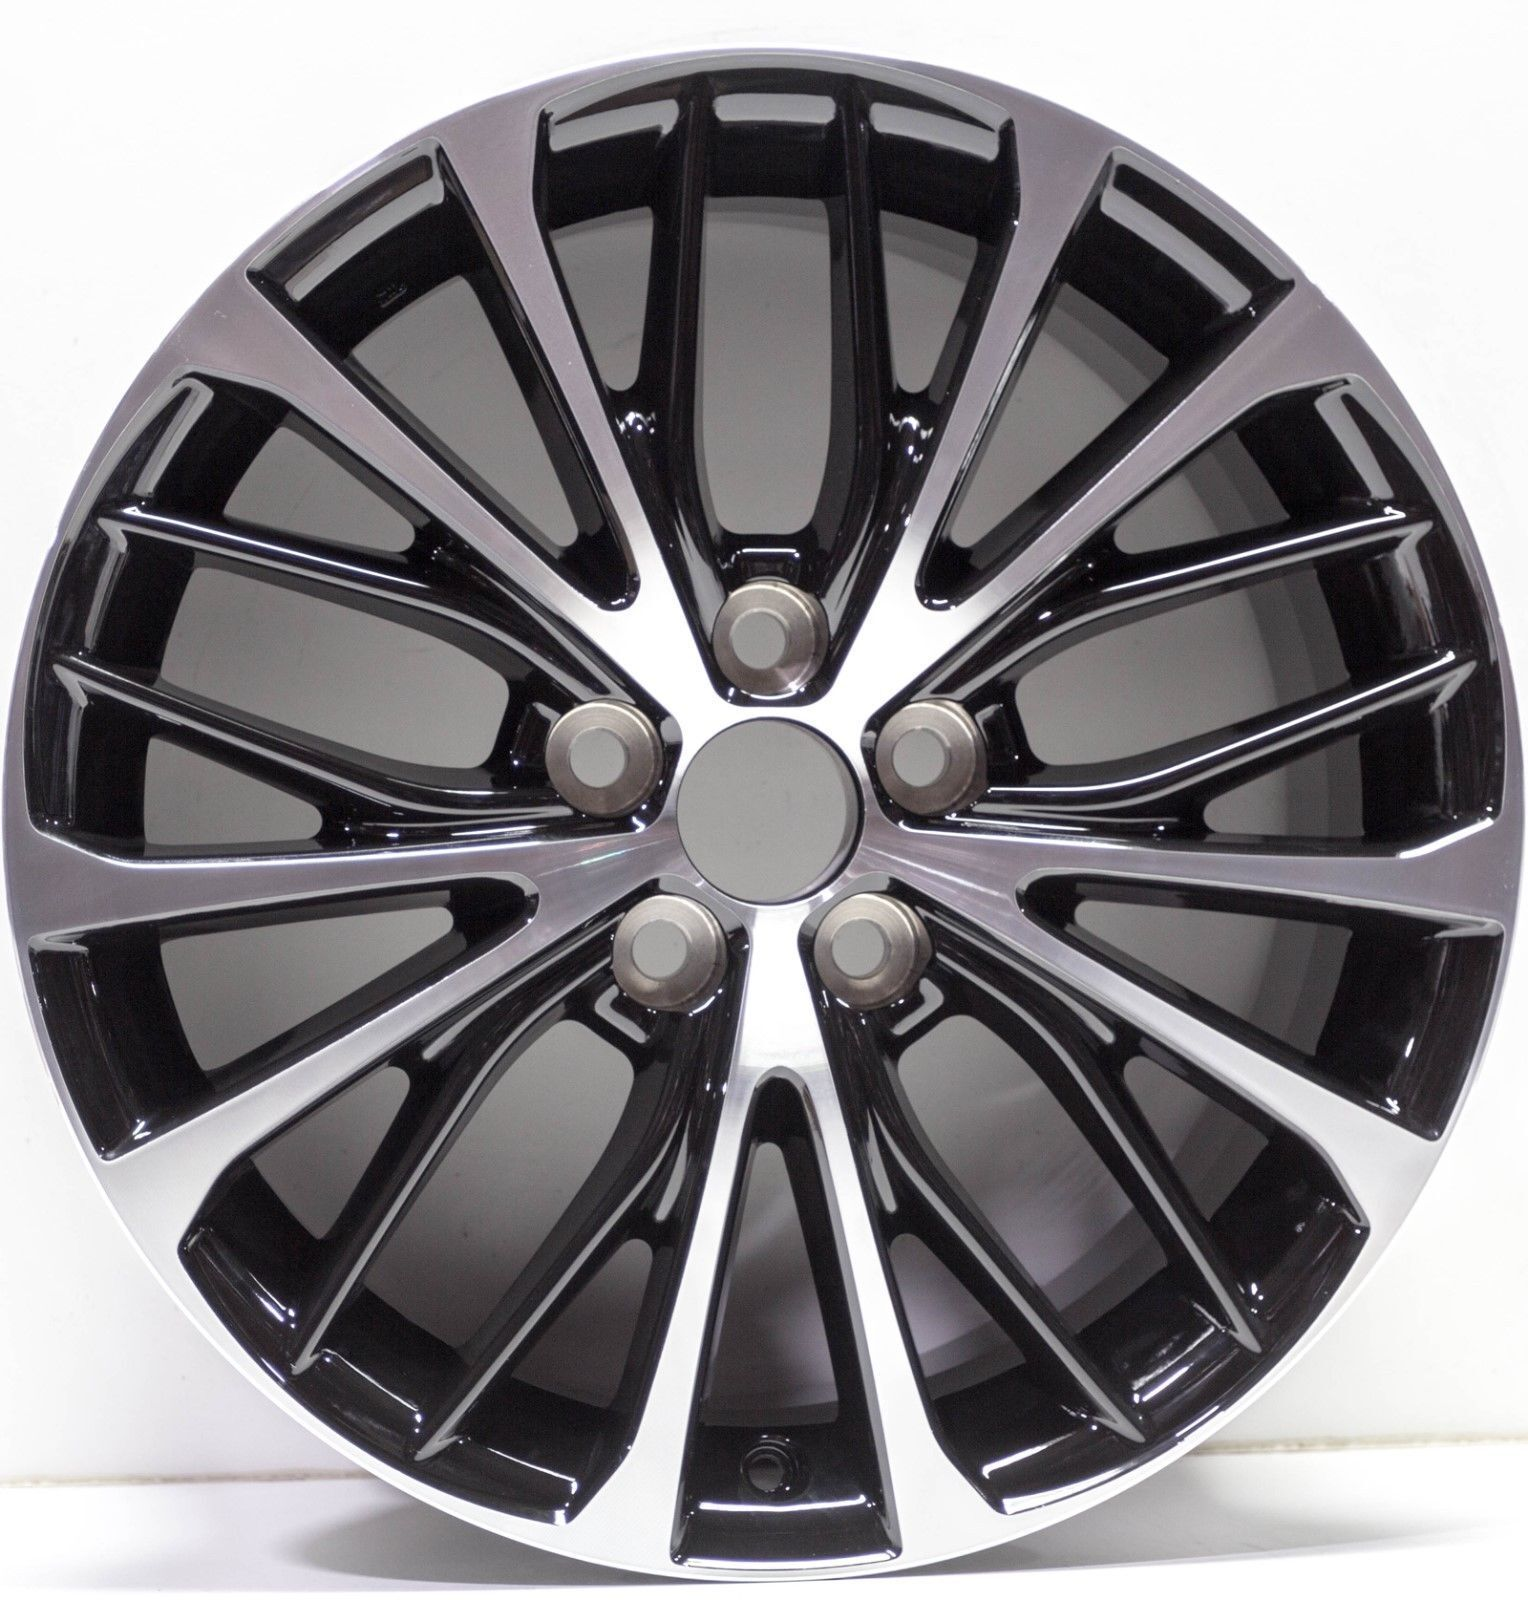 "New 18"" Replacement Alloy Wheel Rim for 2018 2019 Toyota Camry - 75221 - SE"